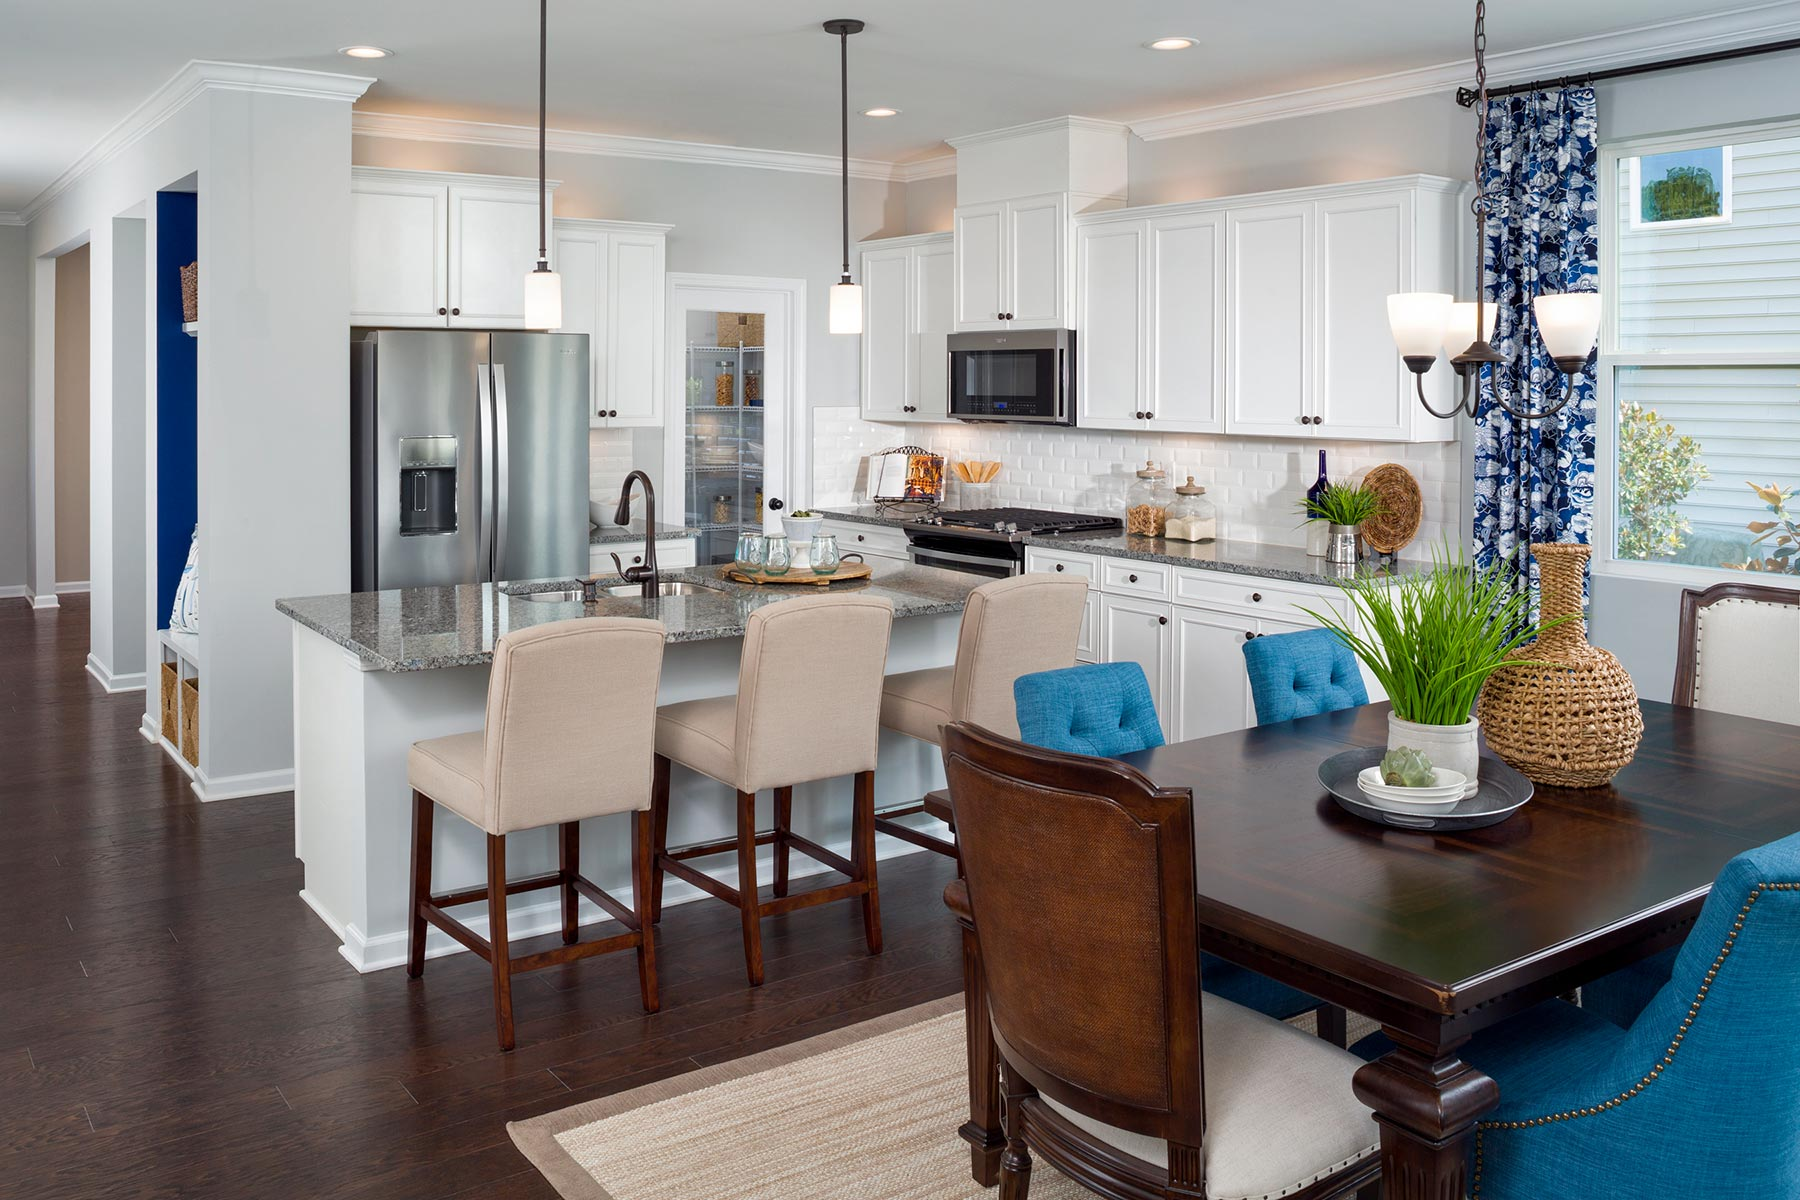 Ridgewater Kitchen in Charlotte North Carolina by Mattamy Homes